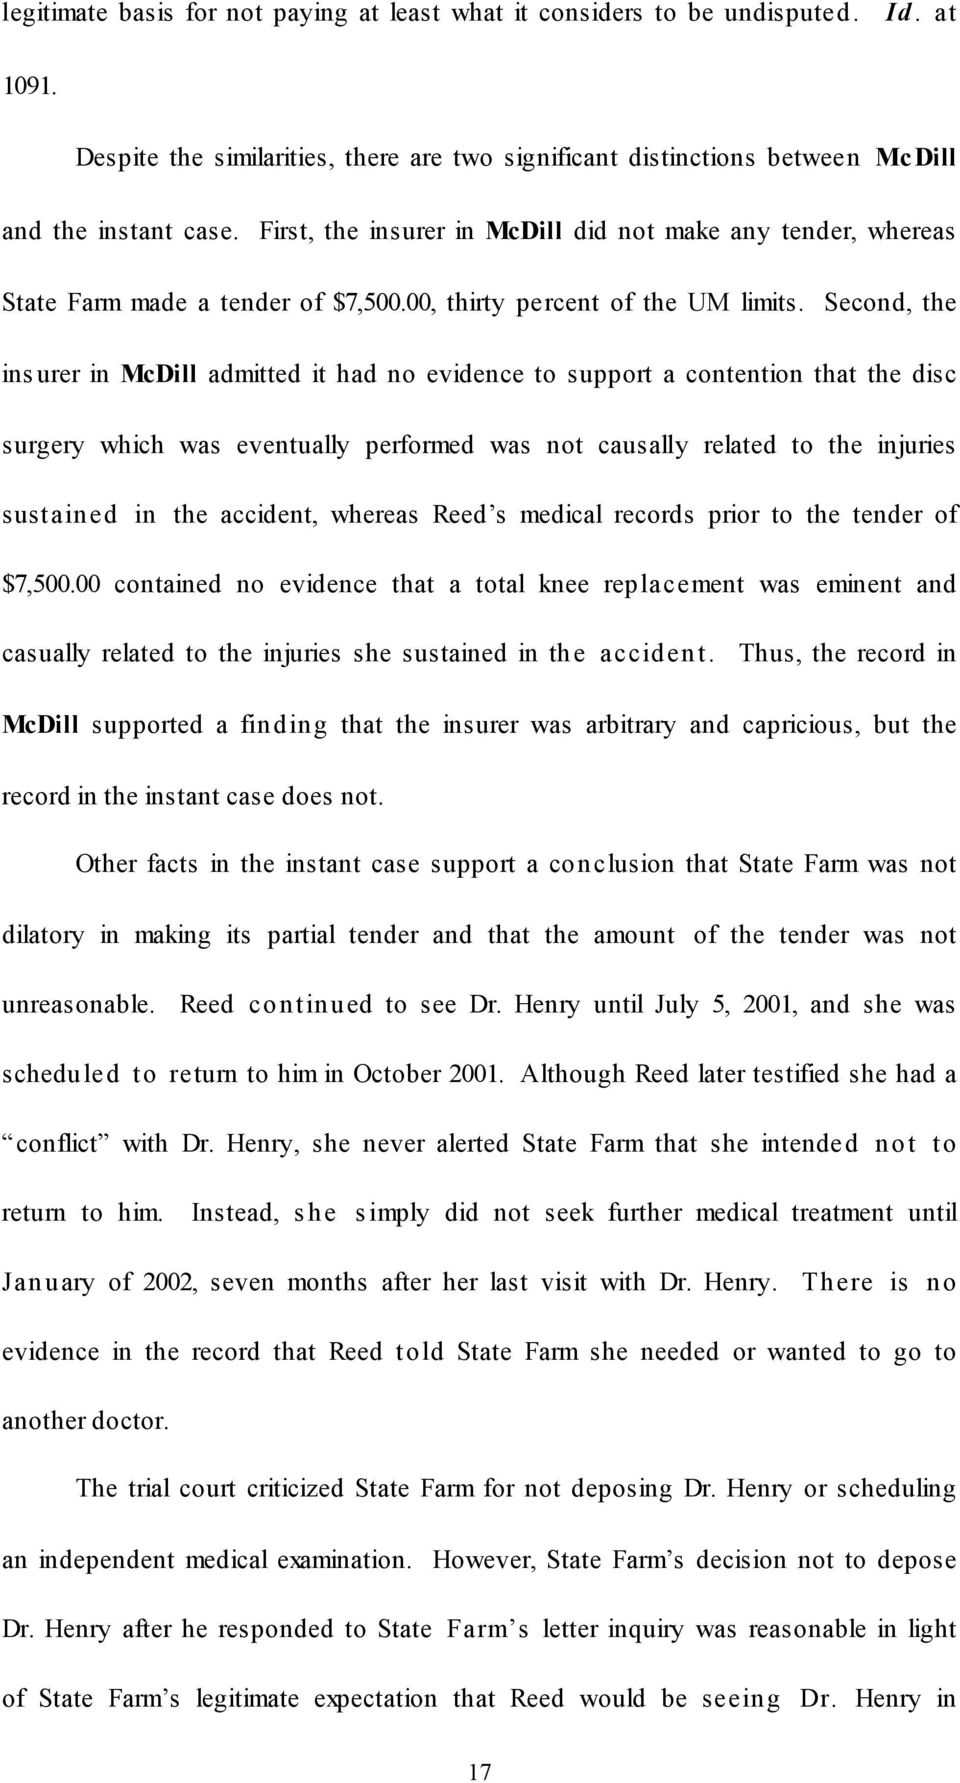 Second, the ins urer in McDill admitted it had no evidence to support a contention that the disc surgery which was eventually performed was not causally related to the injuries sustained in the